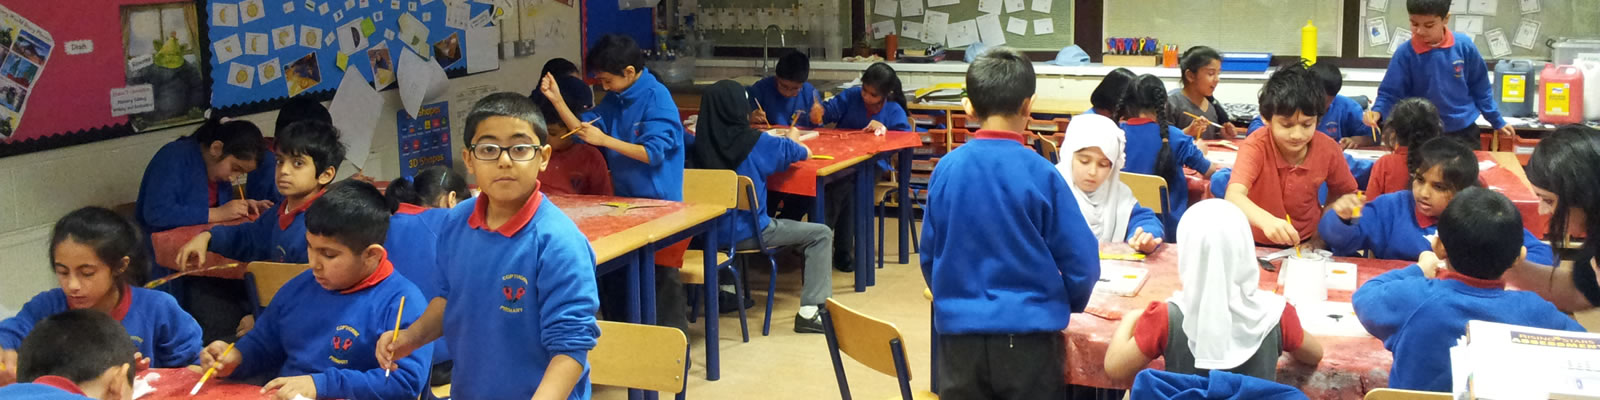 School Aboriginal Art Dot Painting Project